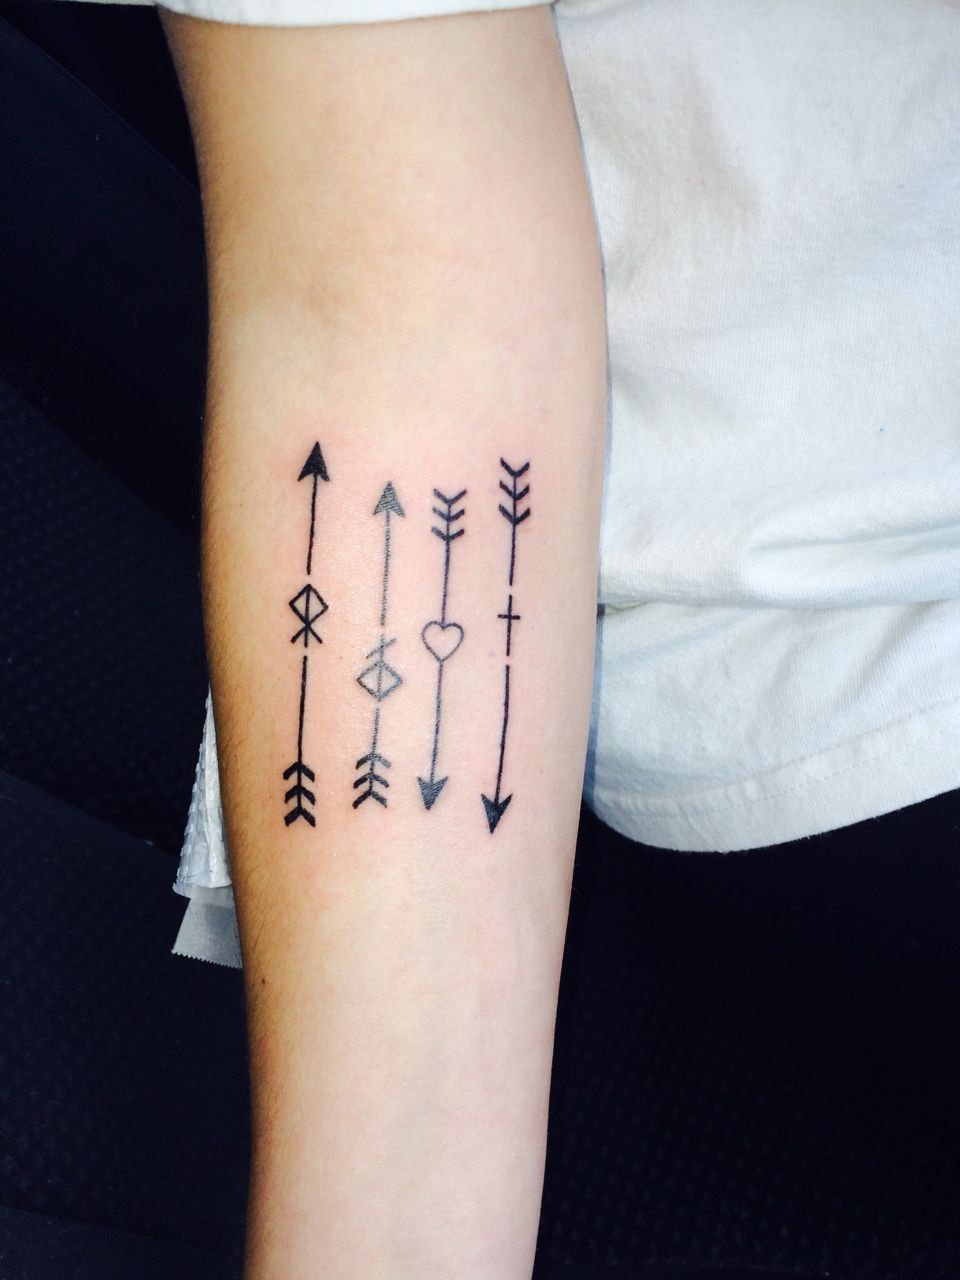 TATTOOS.ORG - Every arrow represents a member of my family